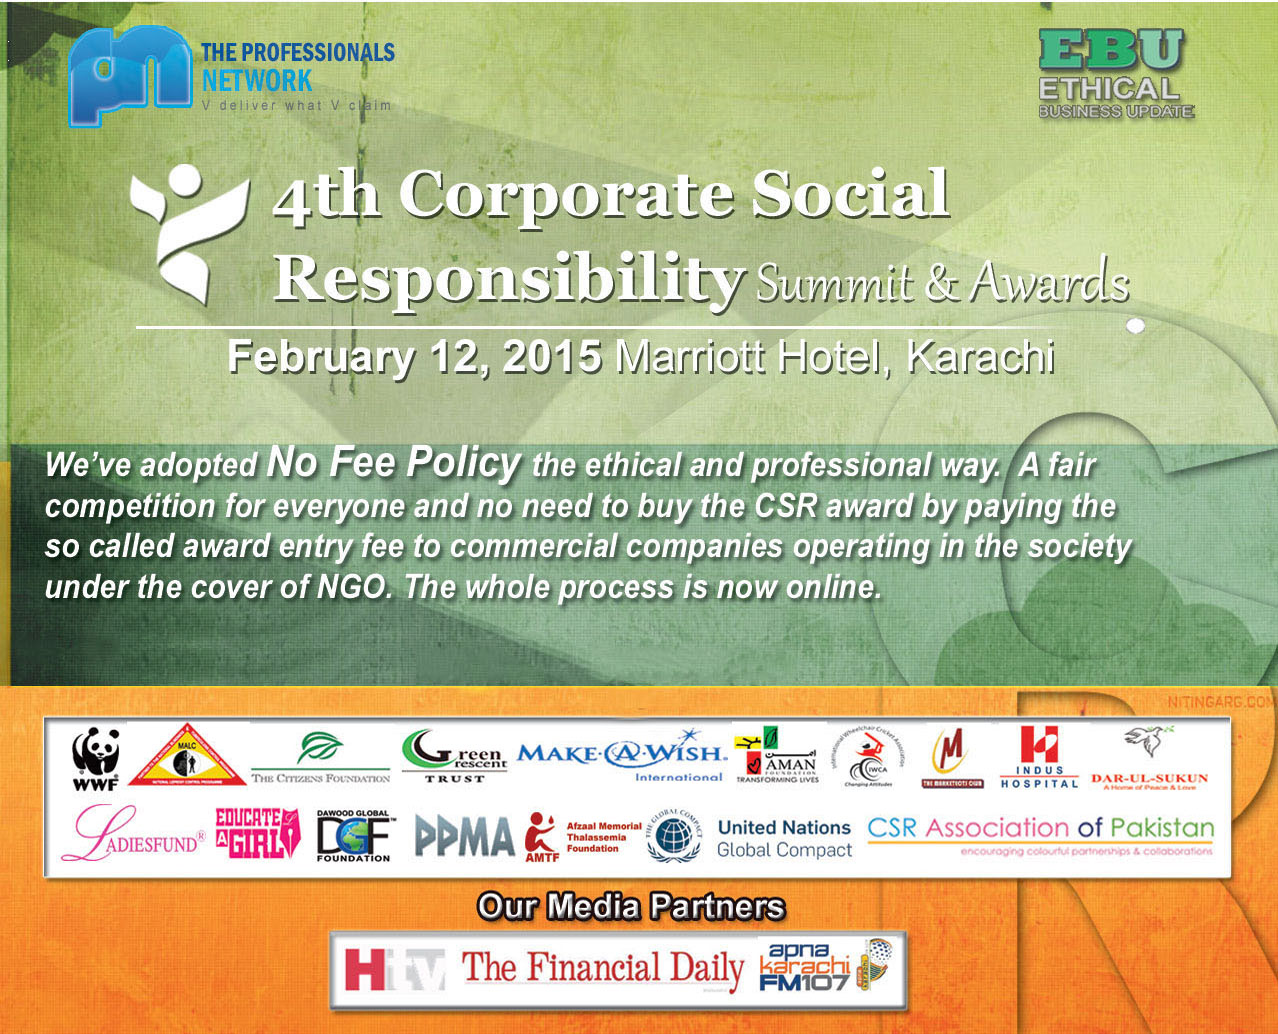 csr-conference-2015-12-02-2015-events